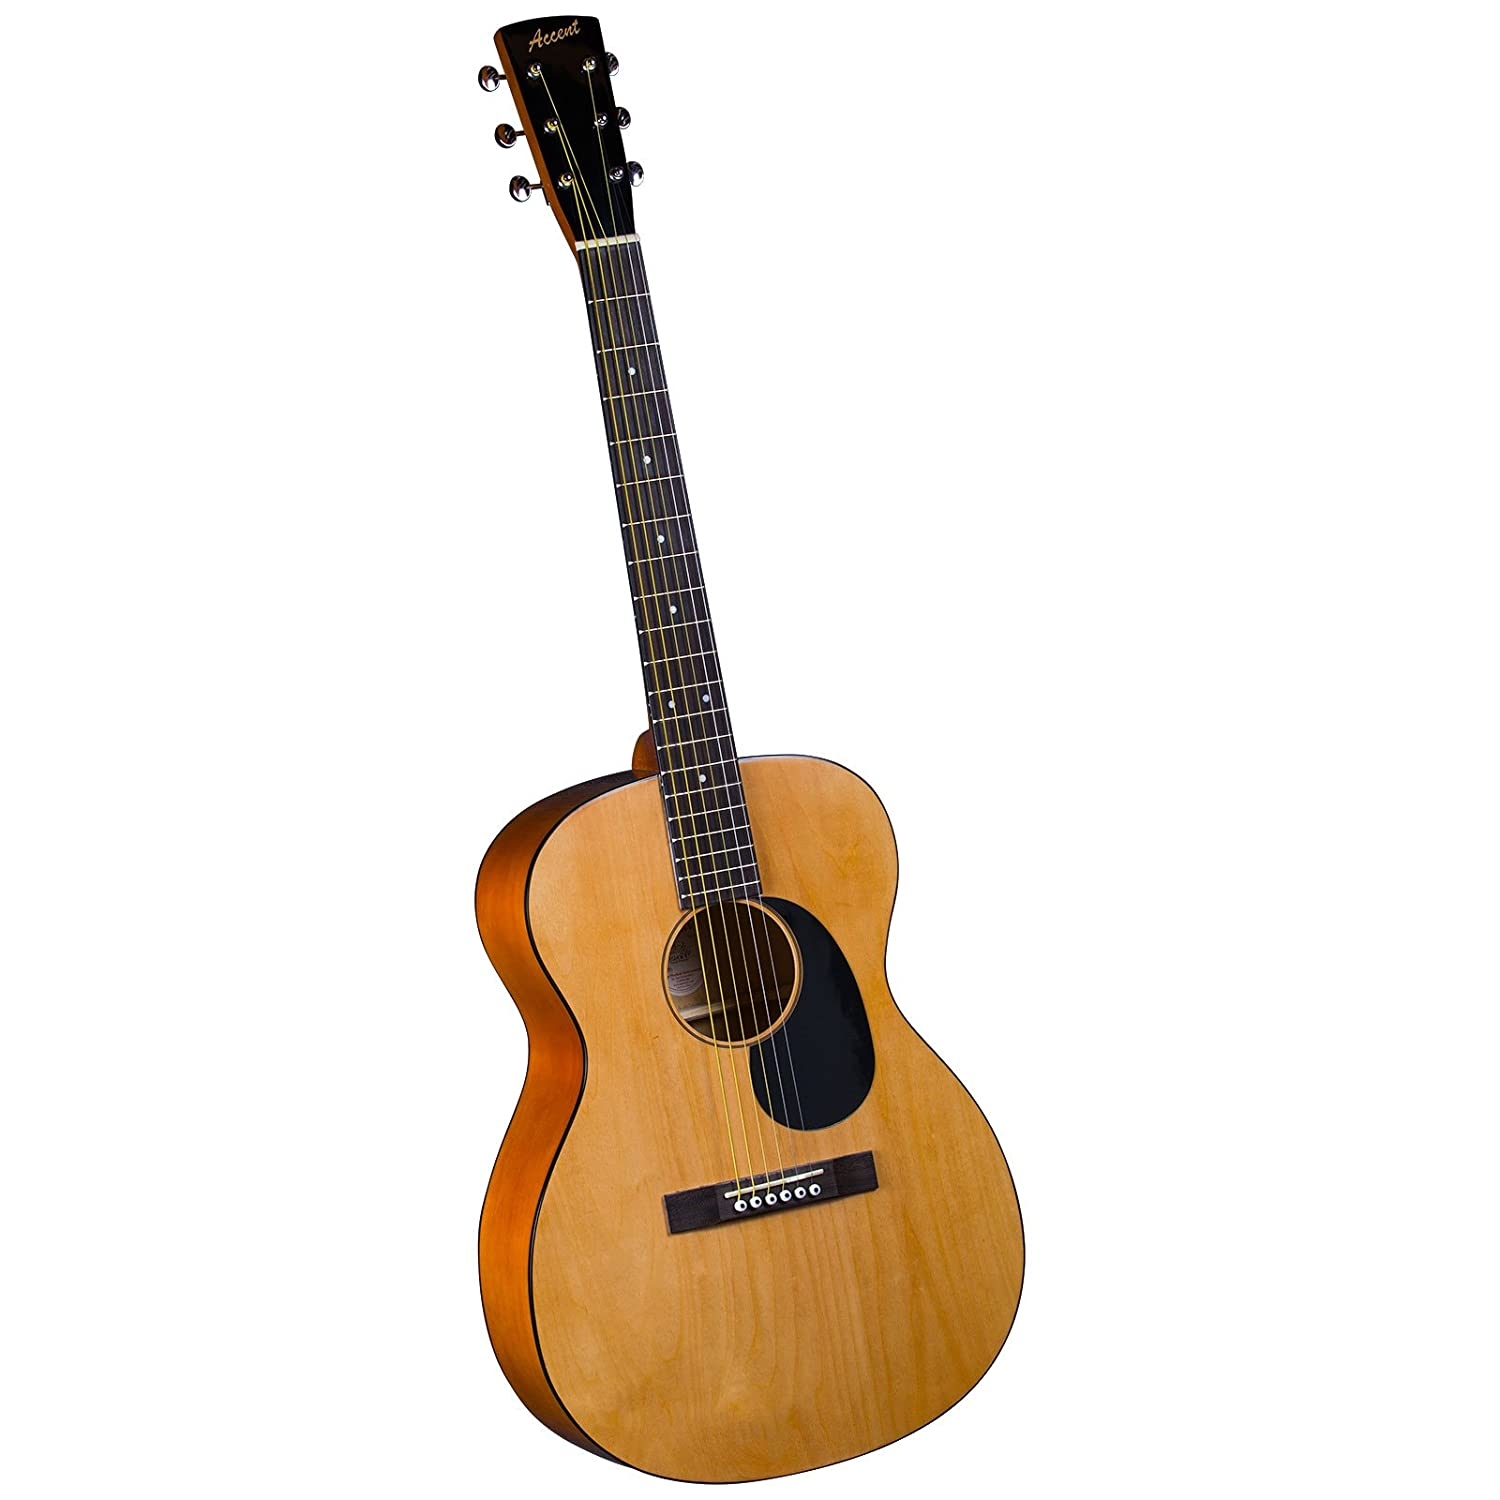 accent cs 2 acoustic folk guitar musical instruments